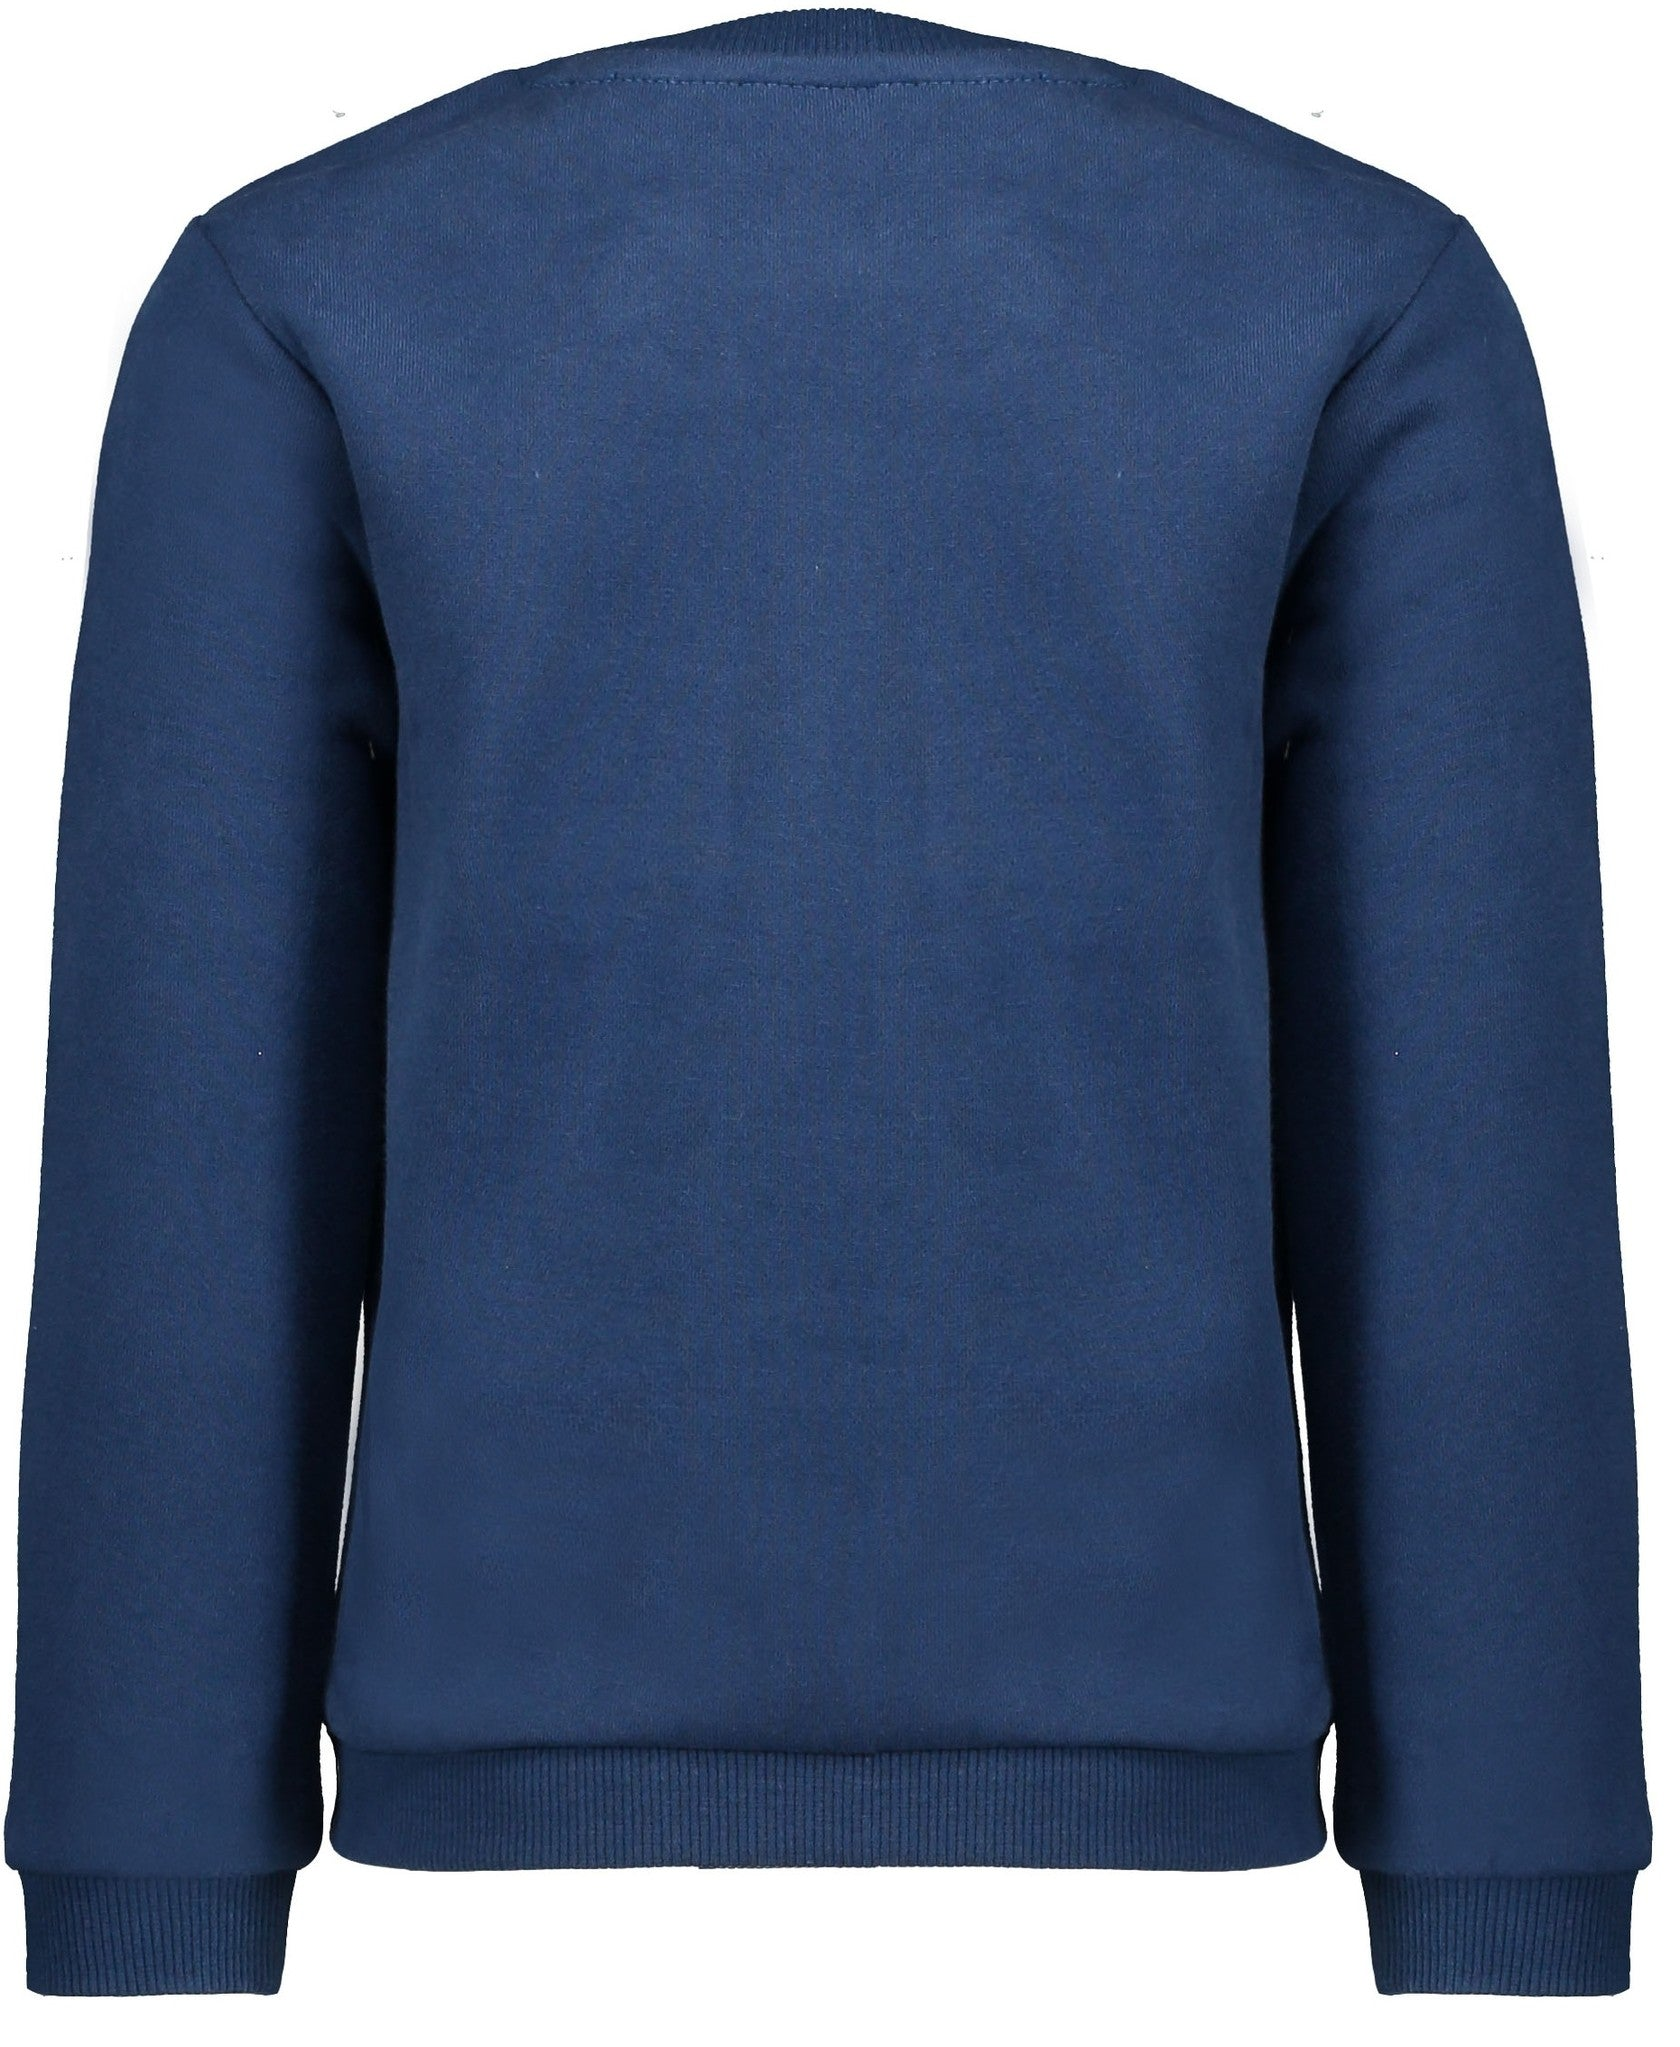 Like FLO - Sweater blauw